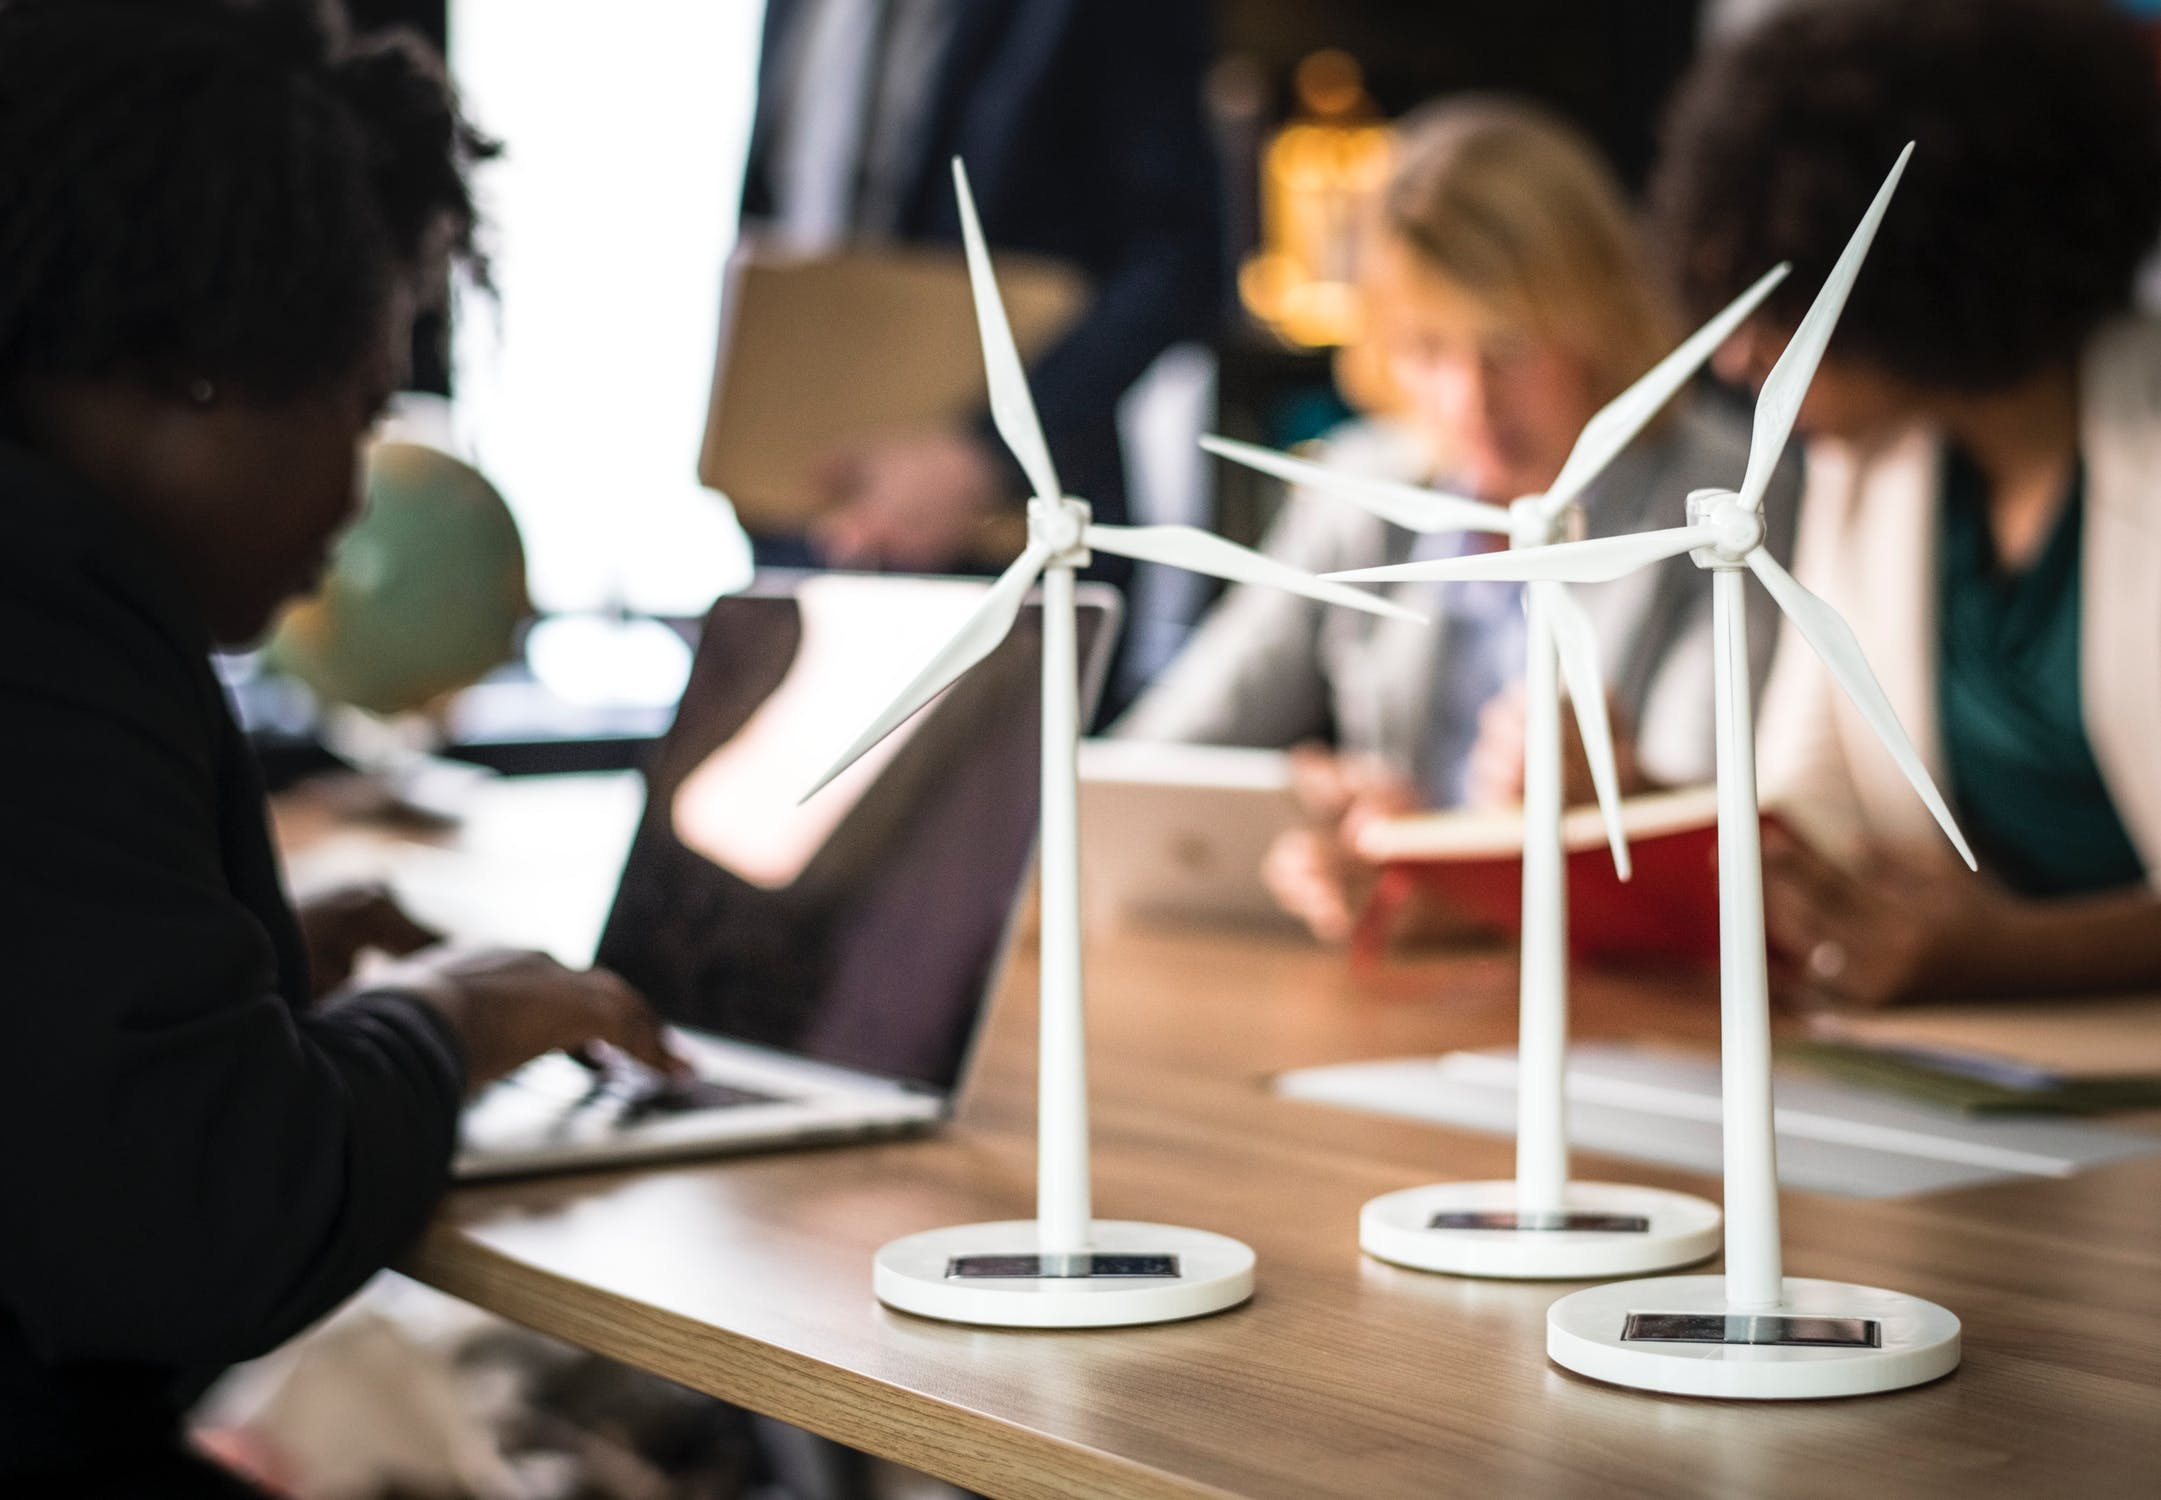 Small renewable wind farm models on a table with people working behind